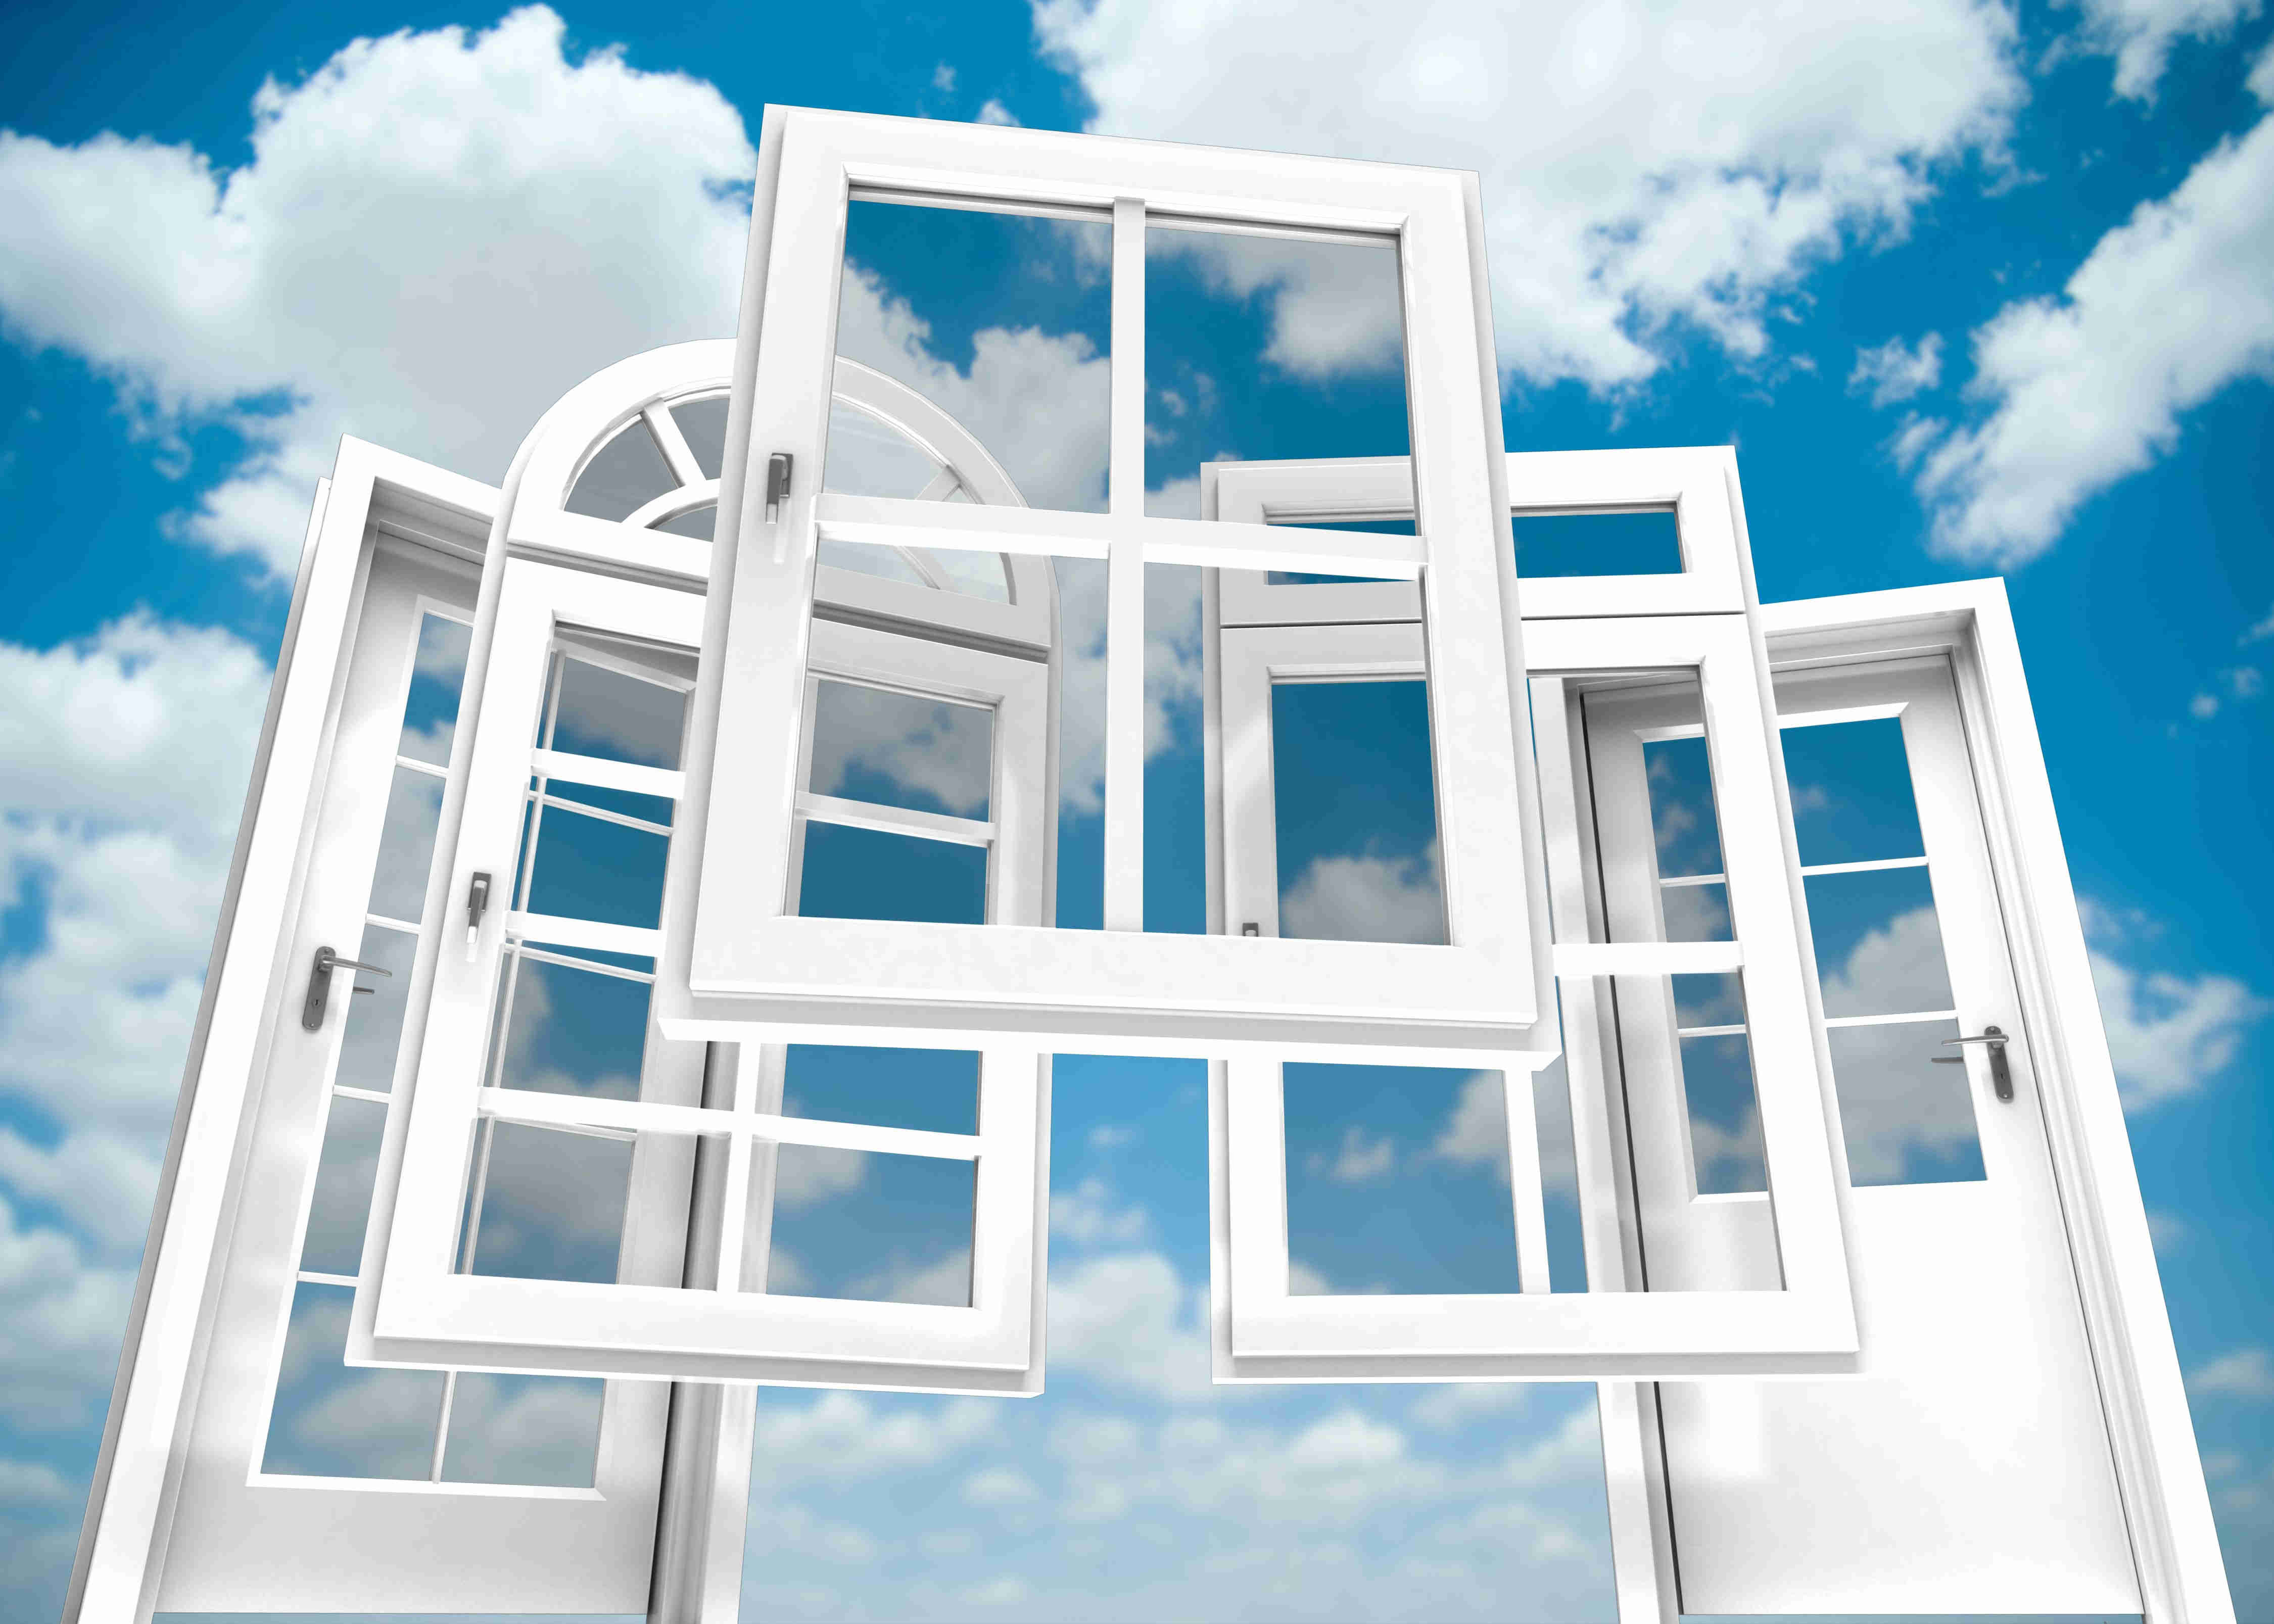 Why Should You Choose Milgard Vinyl Windows for Your Home? For More Reasons Than You May Think